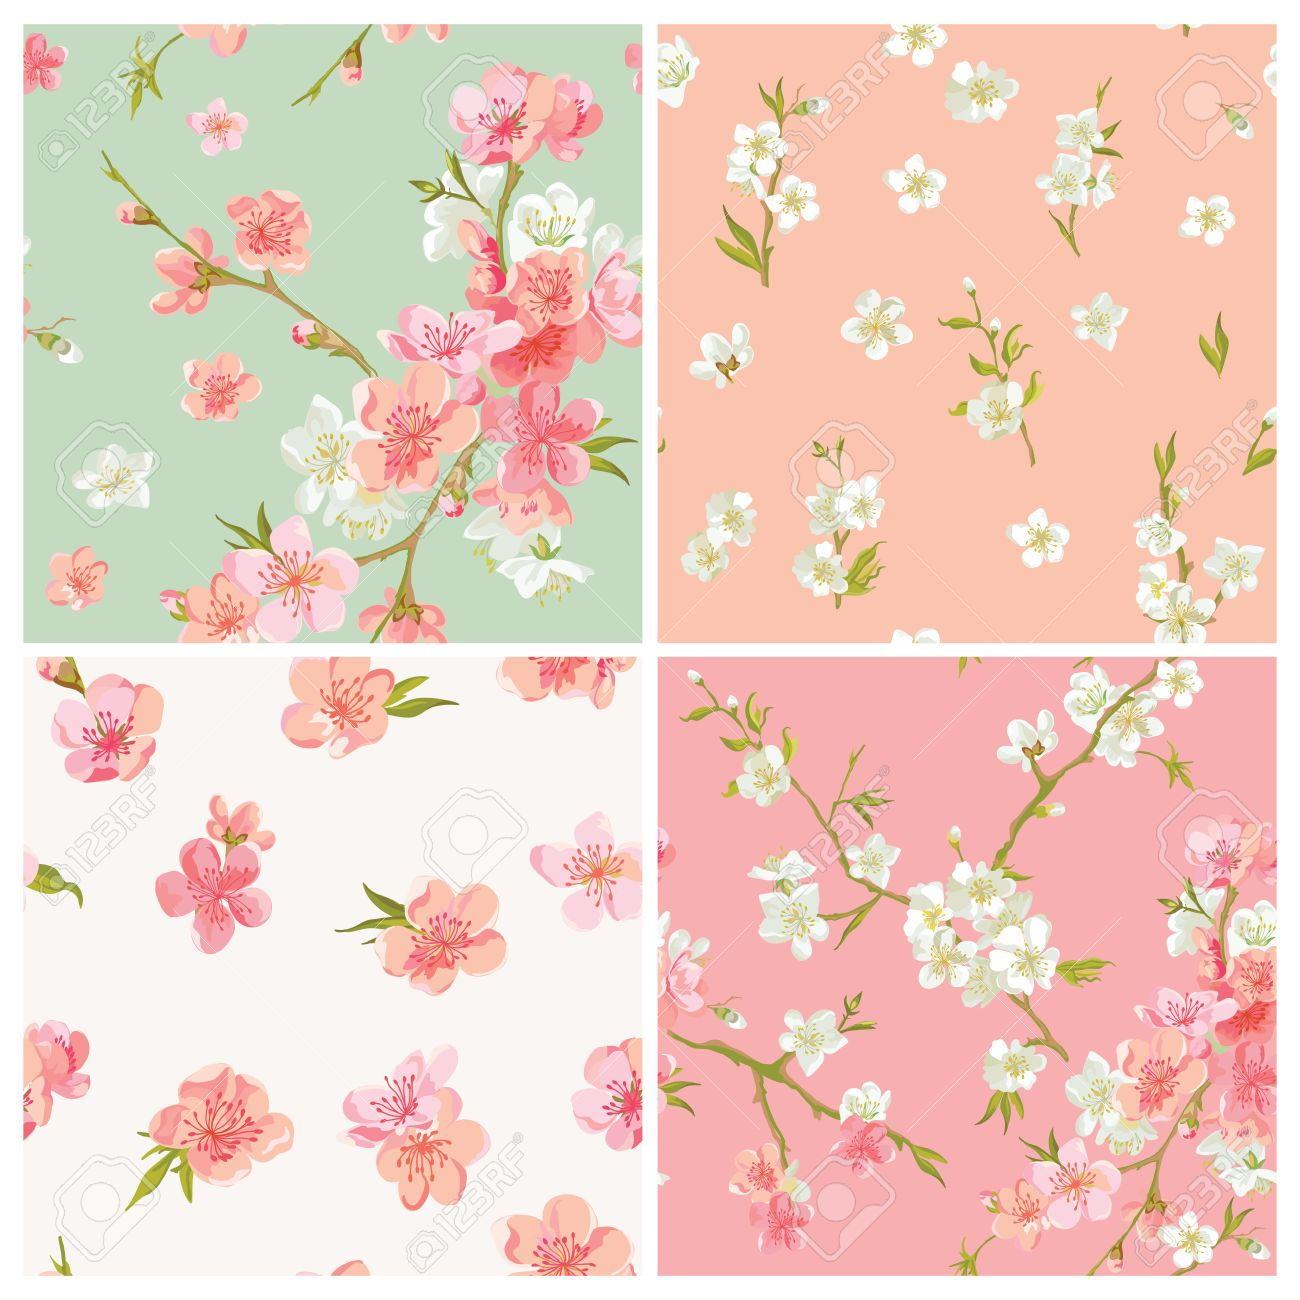 Shabby Deutsch Set Of Spring Blossom Flowers Background Seamless Floral Shabby